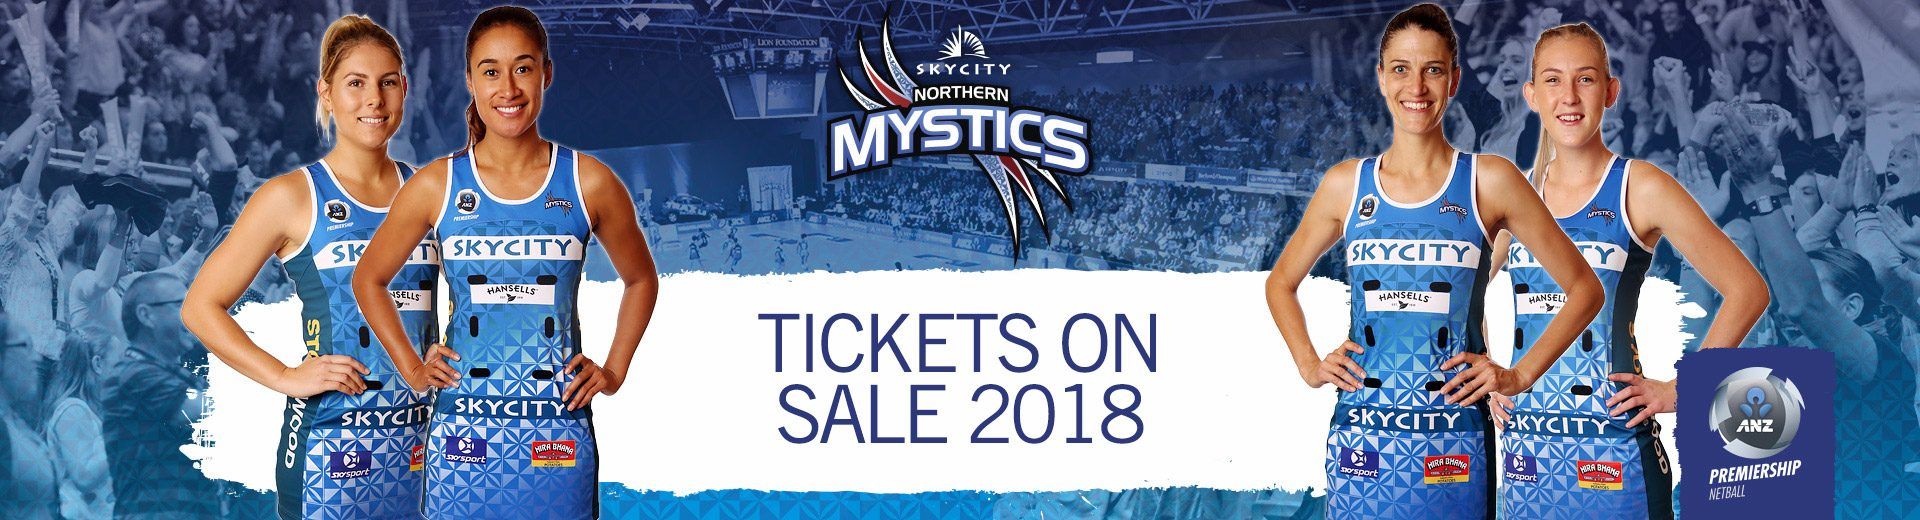 TICKETS-ON--SALE-2018